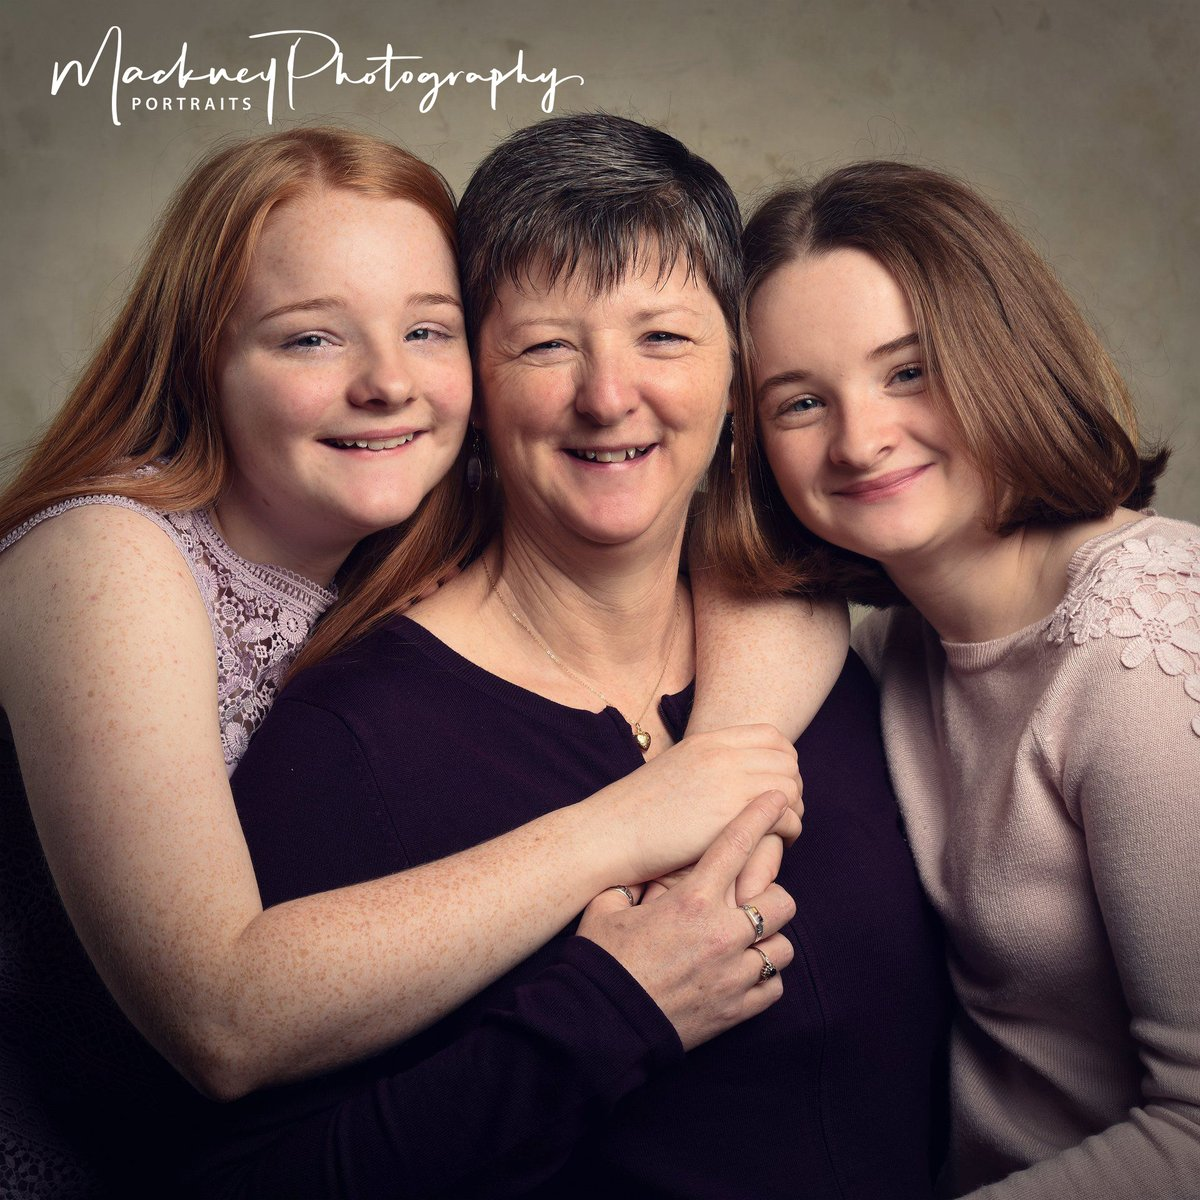 Here come the girls!  I don't think you're ever too old for a cuddle with mum. Tell us why your sending your mum lots of love today #FamilyPortrait #Studioportrait #Generations #family #love #portraits #photography #mackney #derbypic.twitter.com/ovv6BEk4lr